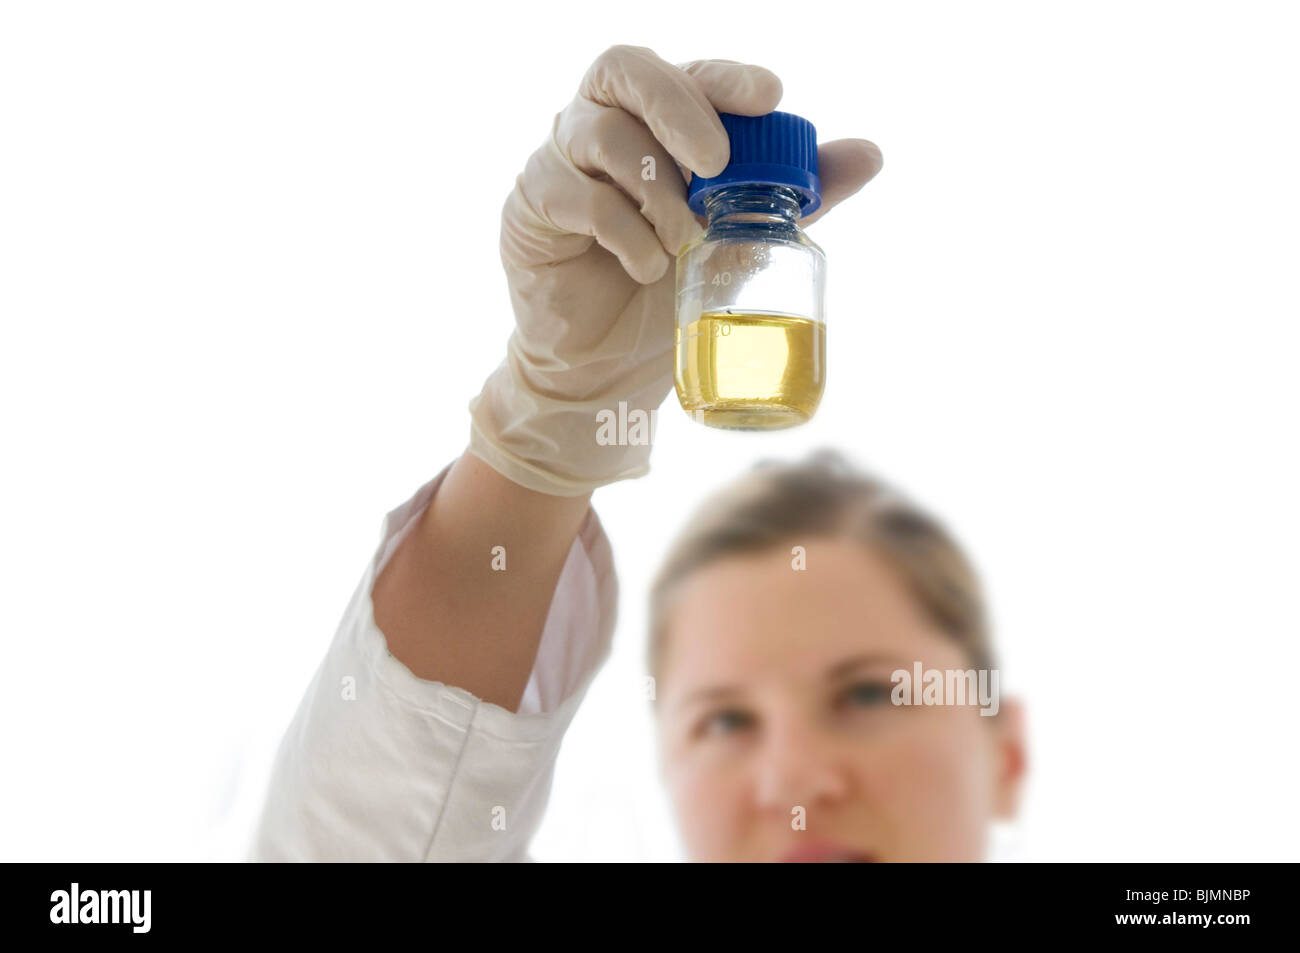 Laboratory scene in a lab for genetic analysis - Stock Image